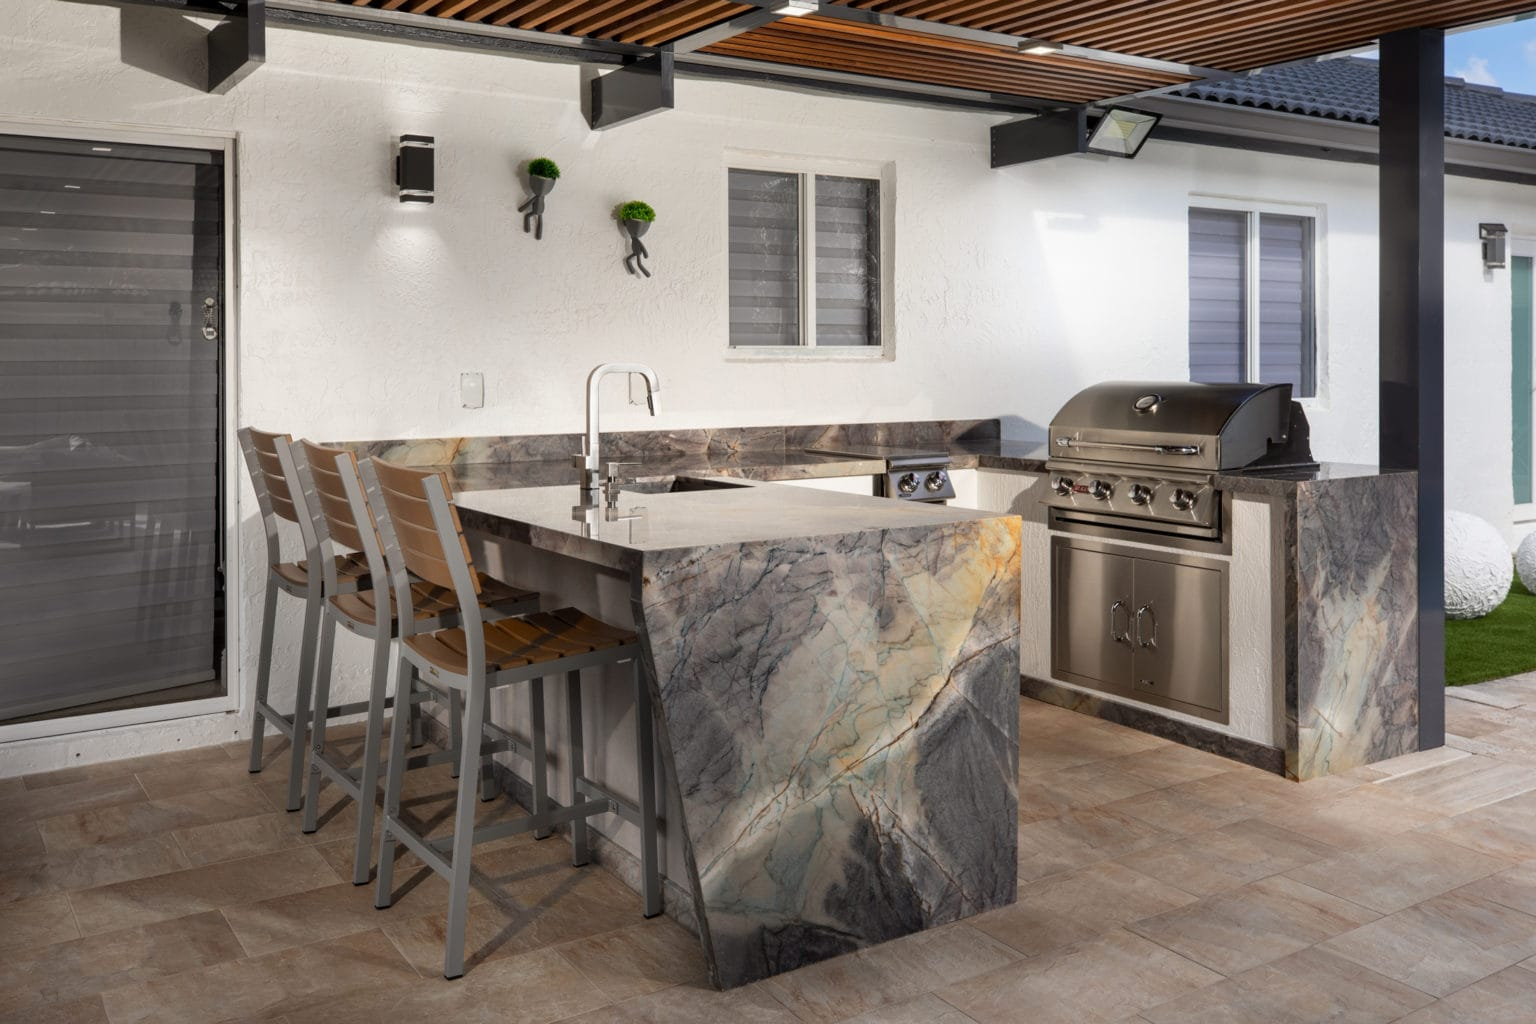 Arizone Shadow Outdoor Kitchen 1 1536x1024, Primestones® Granite, Quartz, Marble